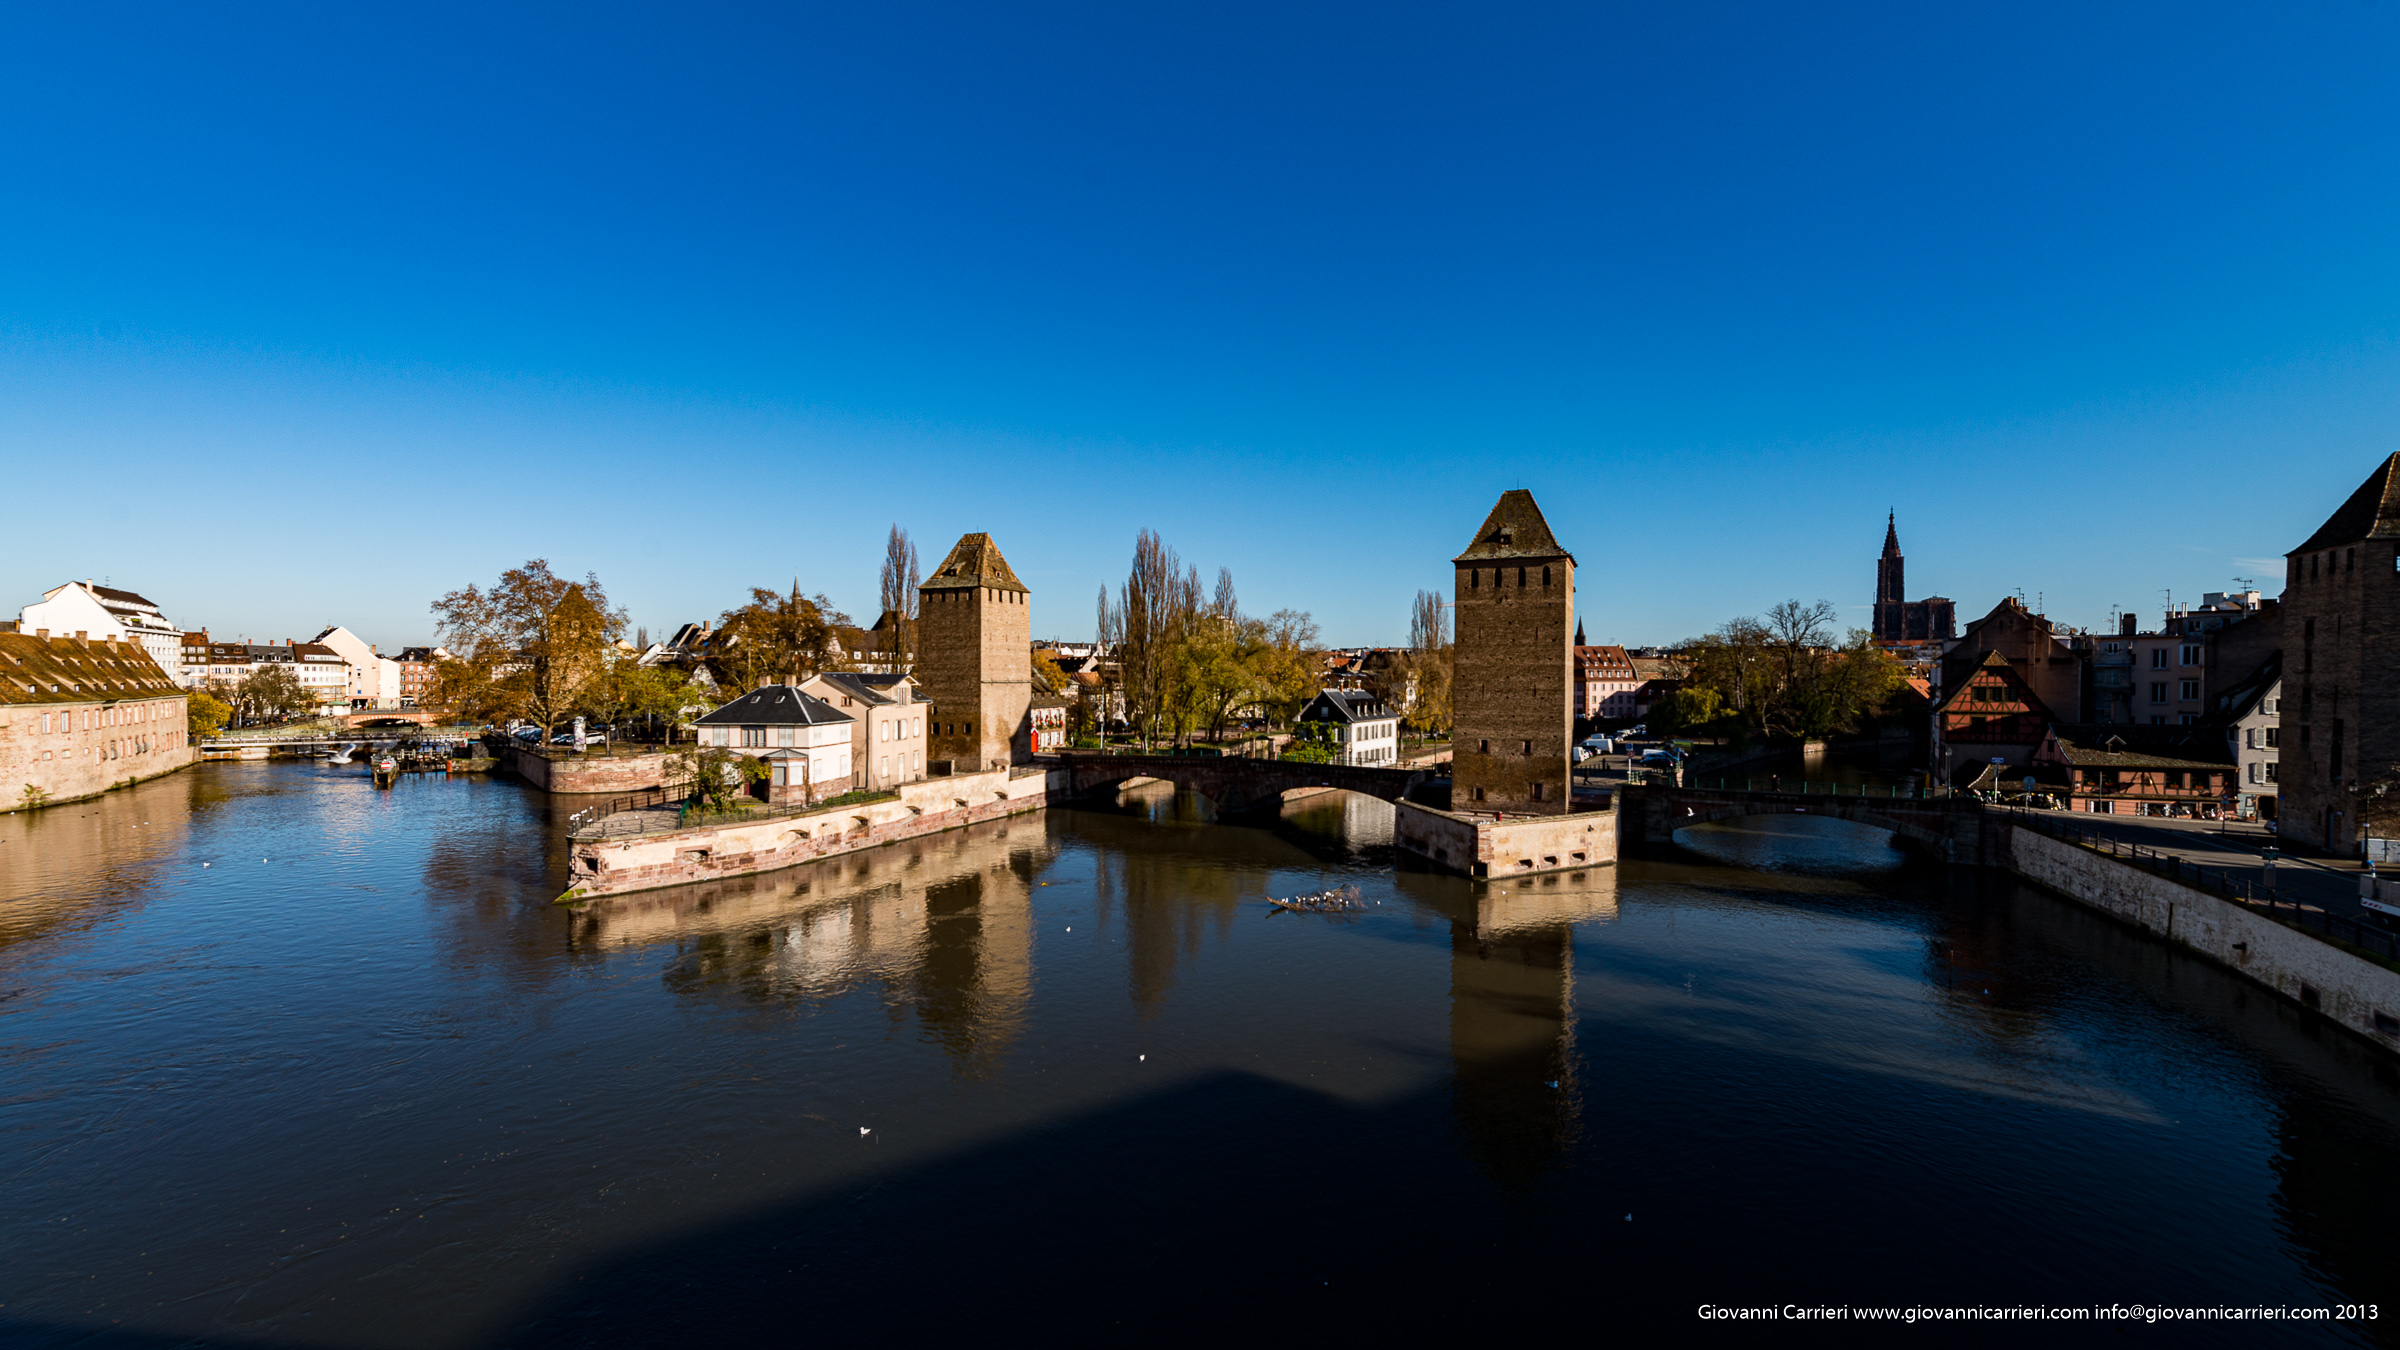 View from the covered bridge - Strasbourg Petite France